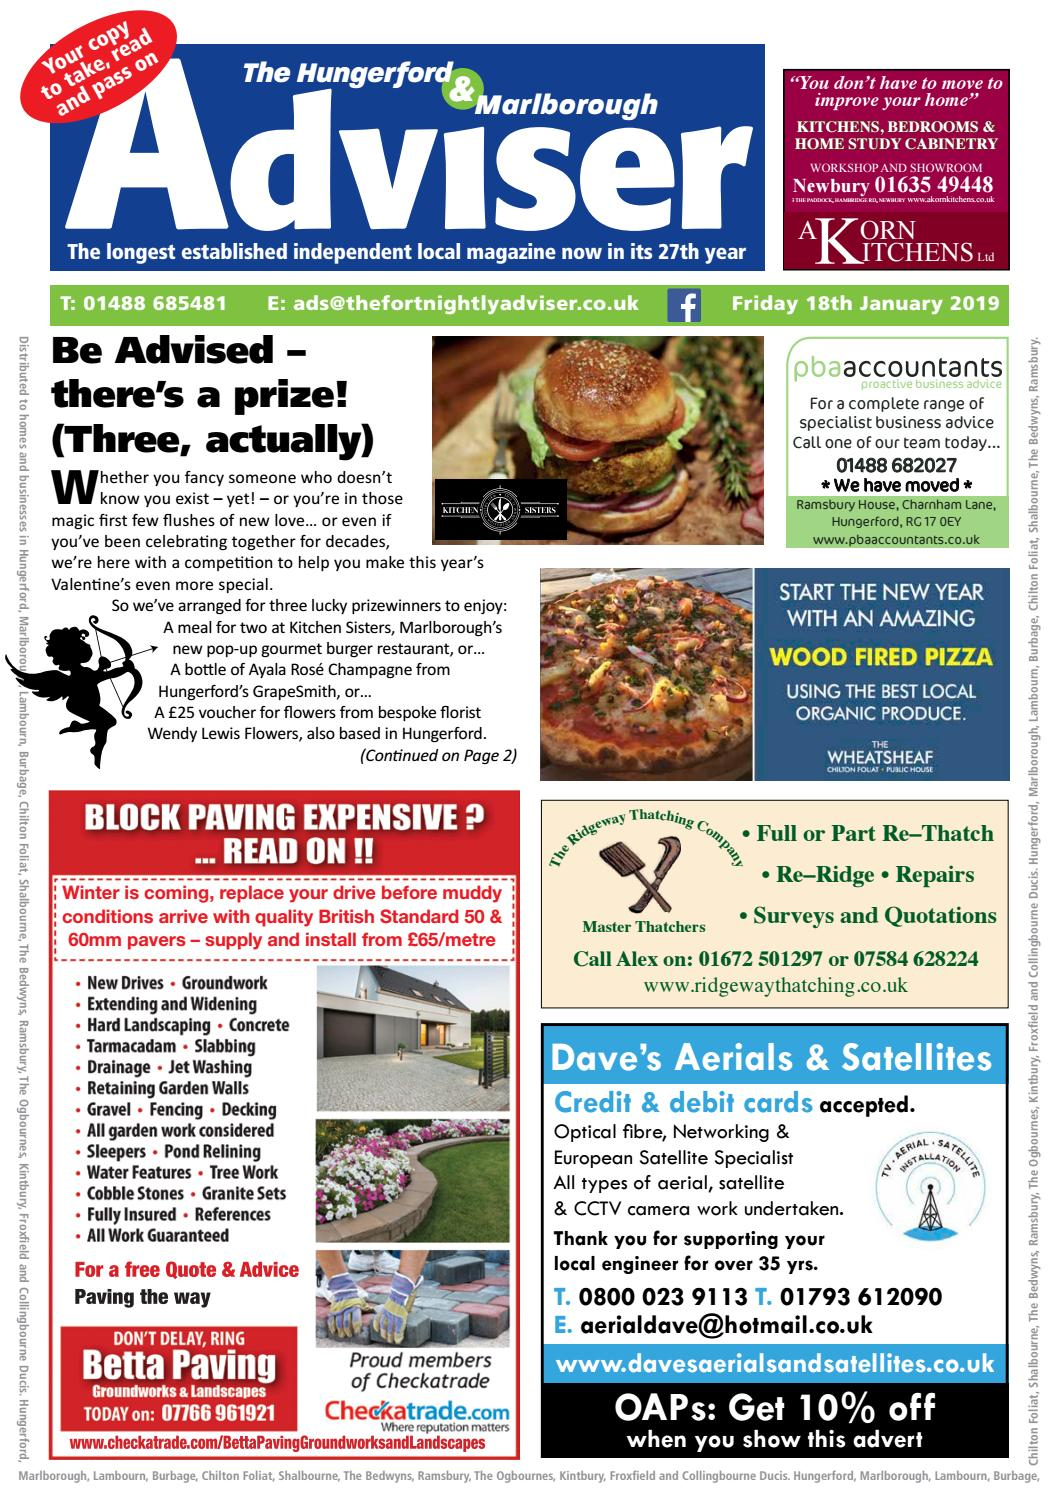 The Hungerford & Marlborough Adviser 18 January 2019 by The